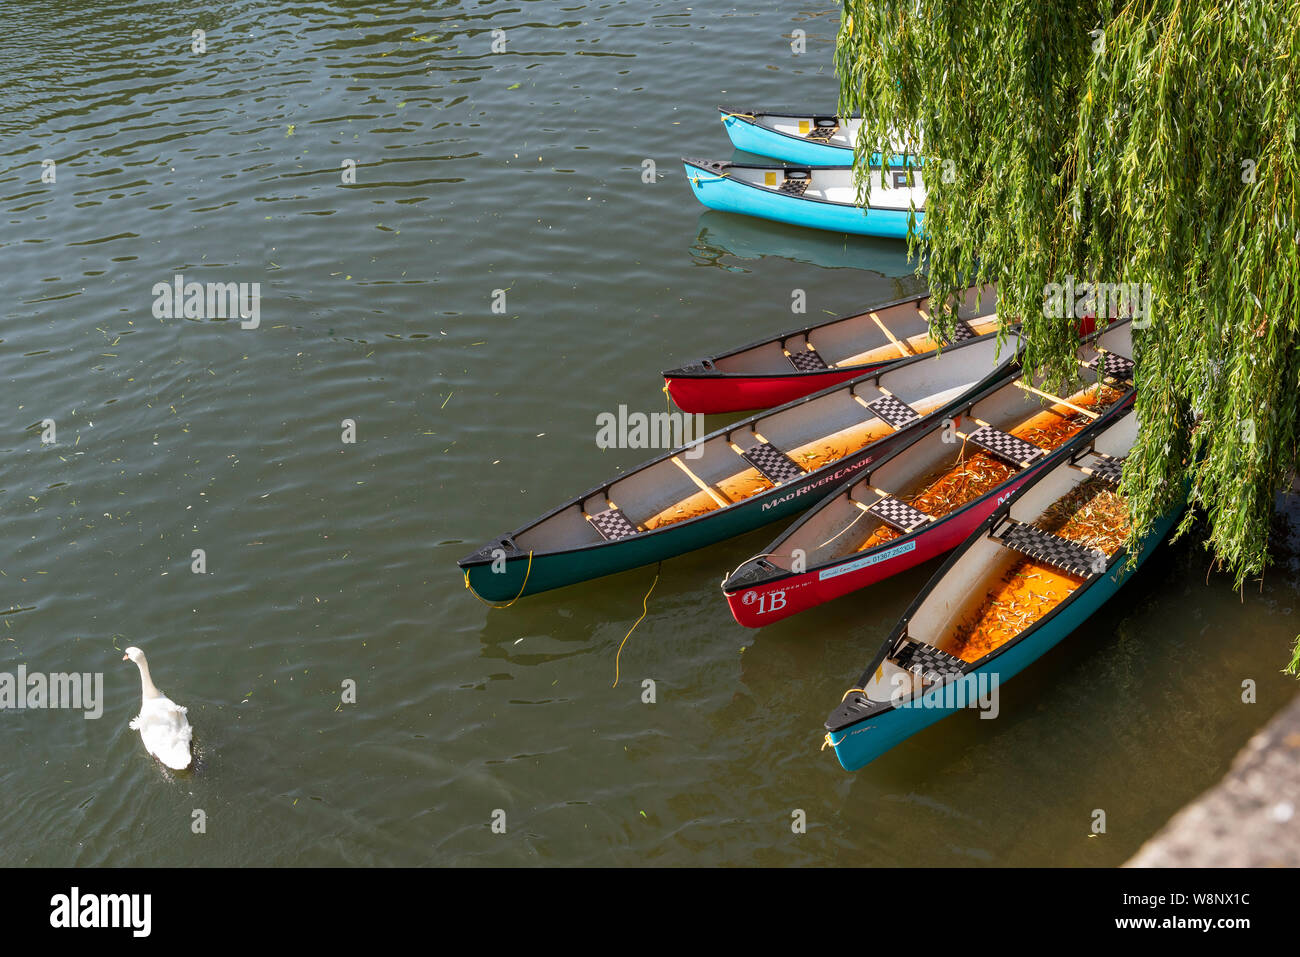 Lechlade, Gloucestershire, England, UK, July 2019. The River Thames at Lechlade on Thames. The highest navigable point of this famous river. Canoes fo Stock Photo